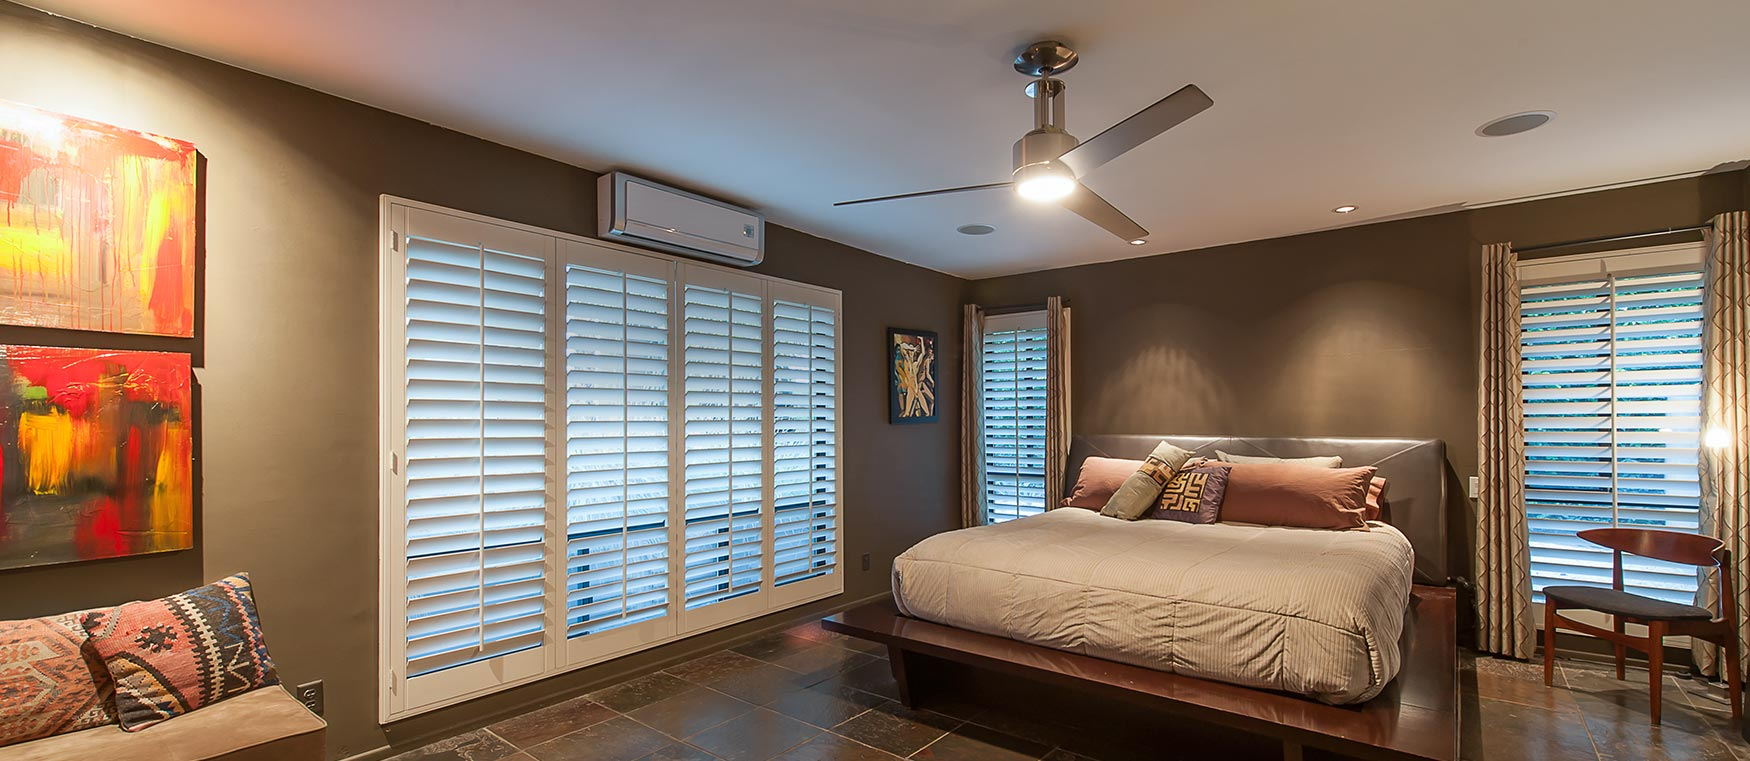 Lennox Ductless Mini Split Air Conditioning Repair And Installation Services Los Angeles